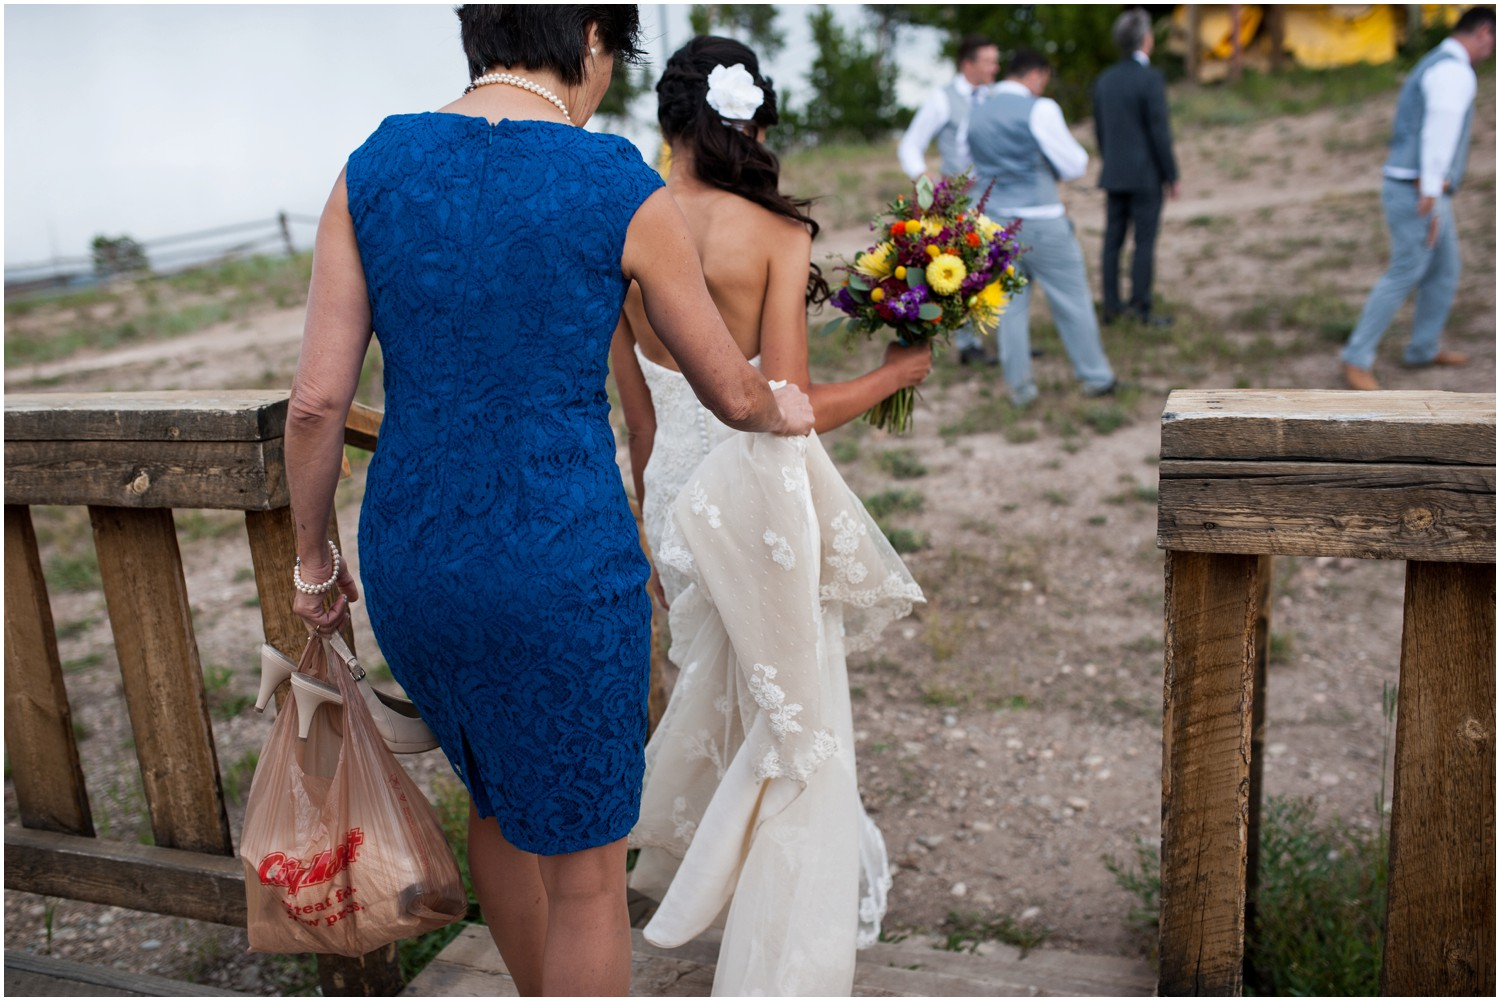 479-Granby-ranch-summer-wedding-photography-Ross.jpg